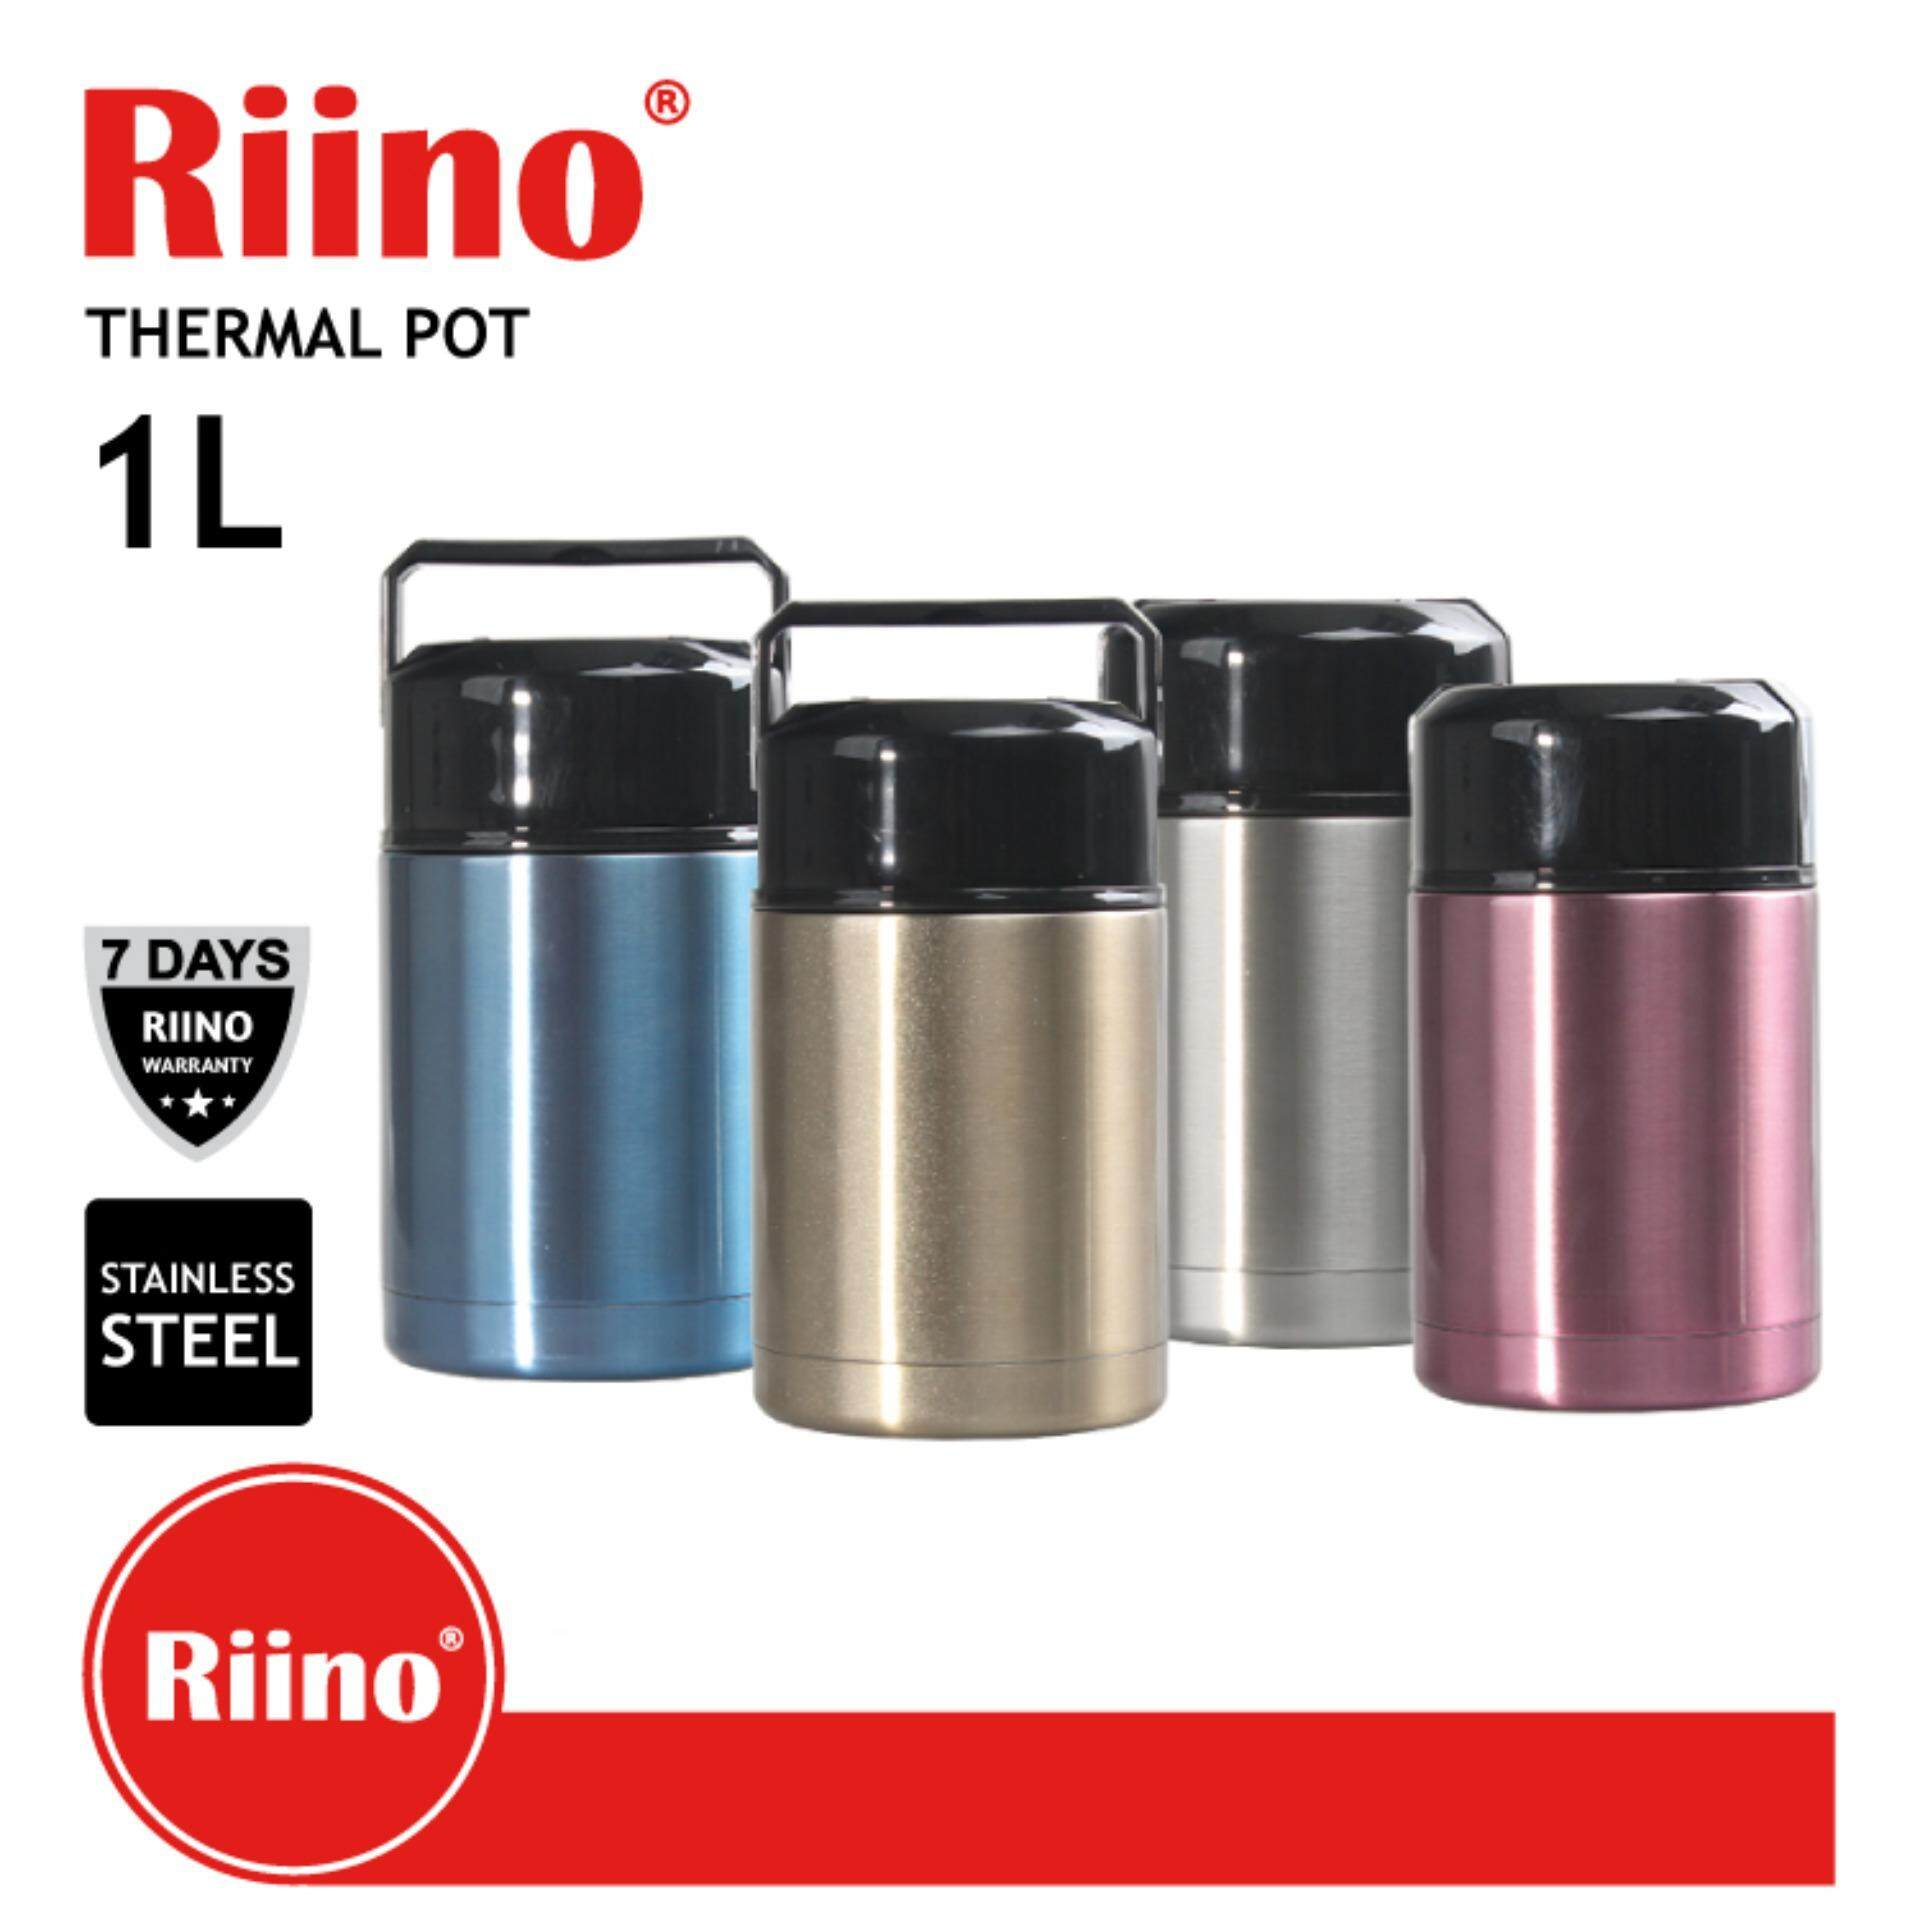 Riino 1000ML Thermal Pot Stainless Steel Portable Cooker Thermo (Gold)